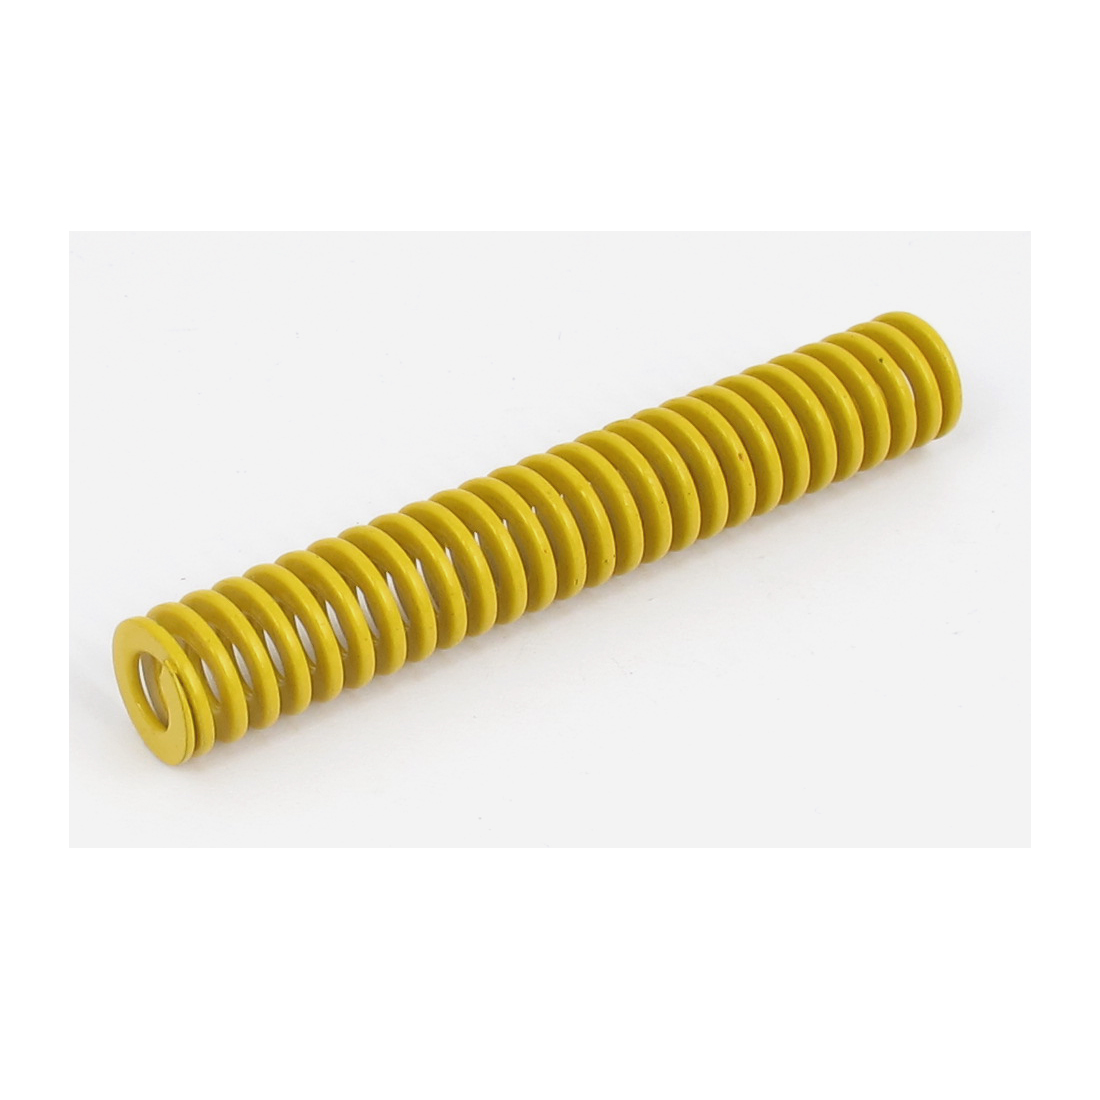 12mm OD 75mm Long Lightest Load Spiral Stamping Compression Die Spring Yellow